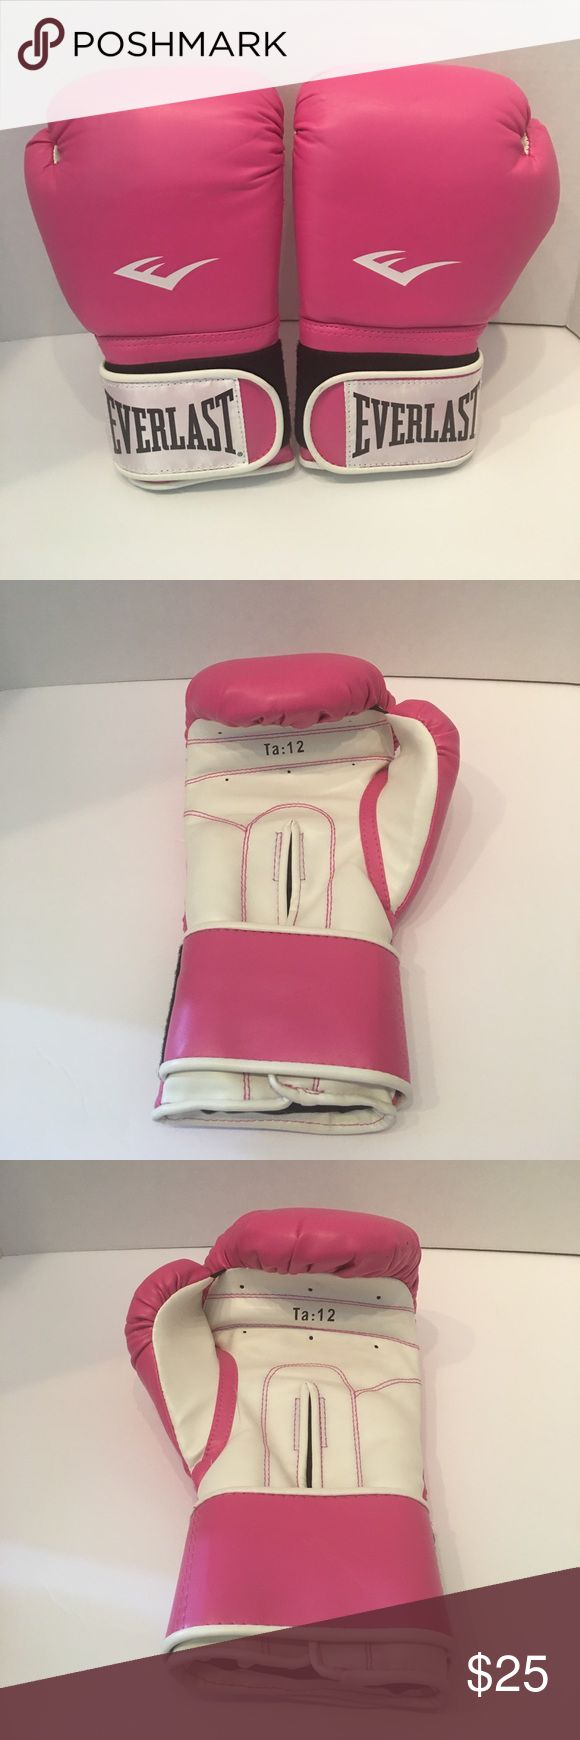 AMAZING NWT LADIES PINK EVERLAST BOXING GLOVES!! BEAUTIFUL NEW PINK BREAST CANCER AWARENESS LADIES EVERLAST BOXING GLOVES! HELP KNOCK OUT CANCER!! SIZE 12 EVERLAST Accessories Gloves & Mittens